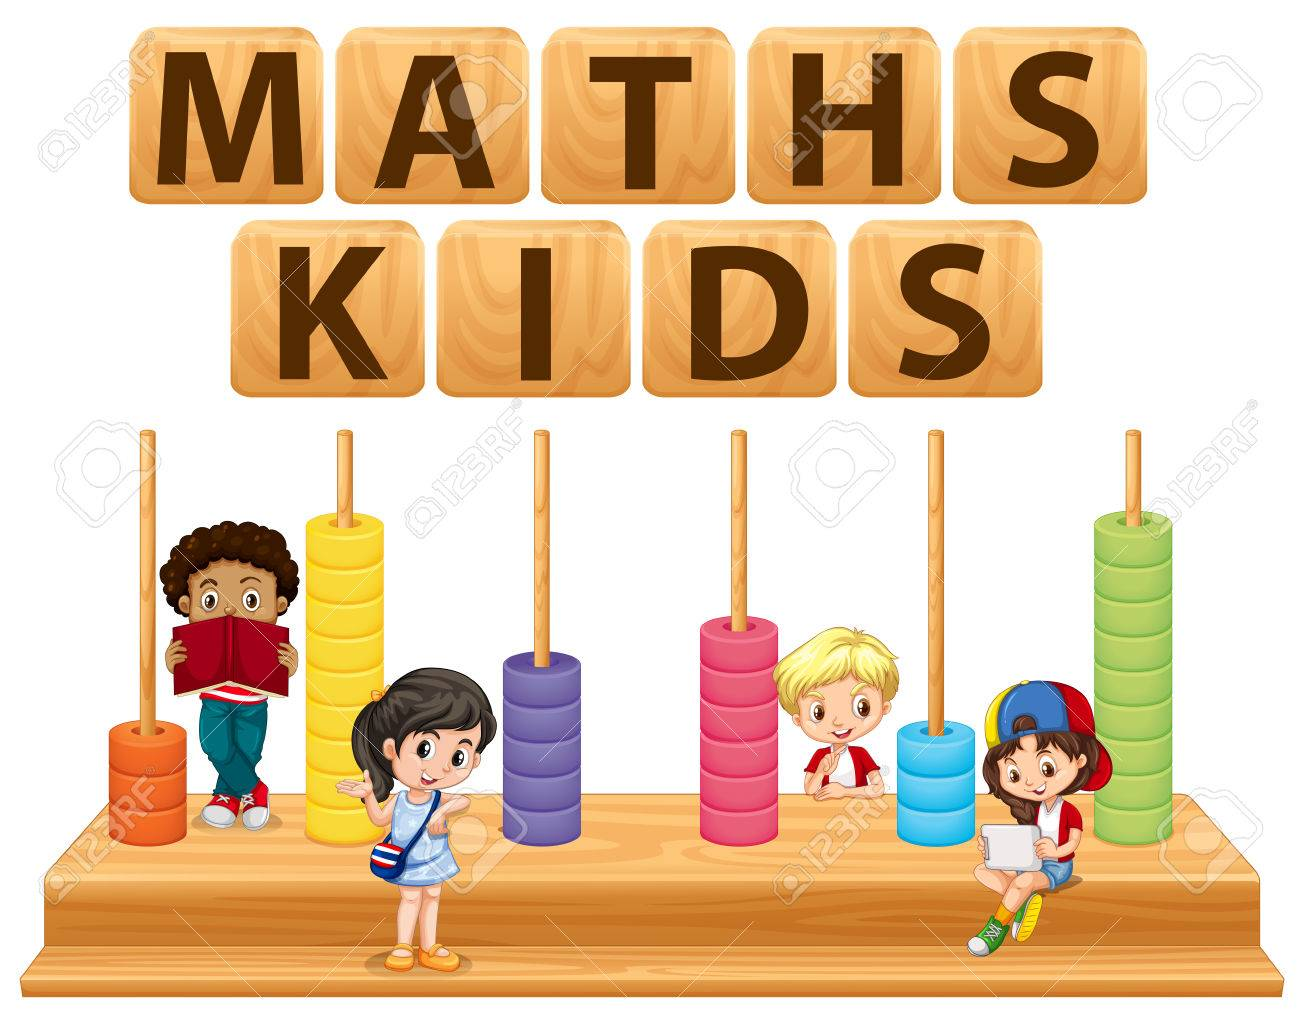 Children And Math Toy Illustration Royalty Free Cliparts, Vectors ...